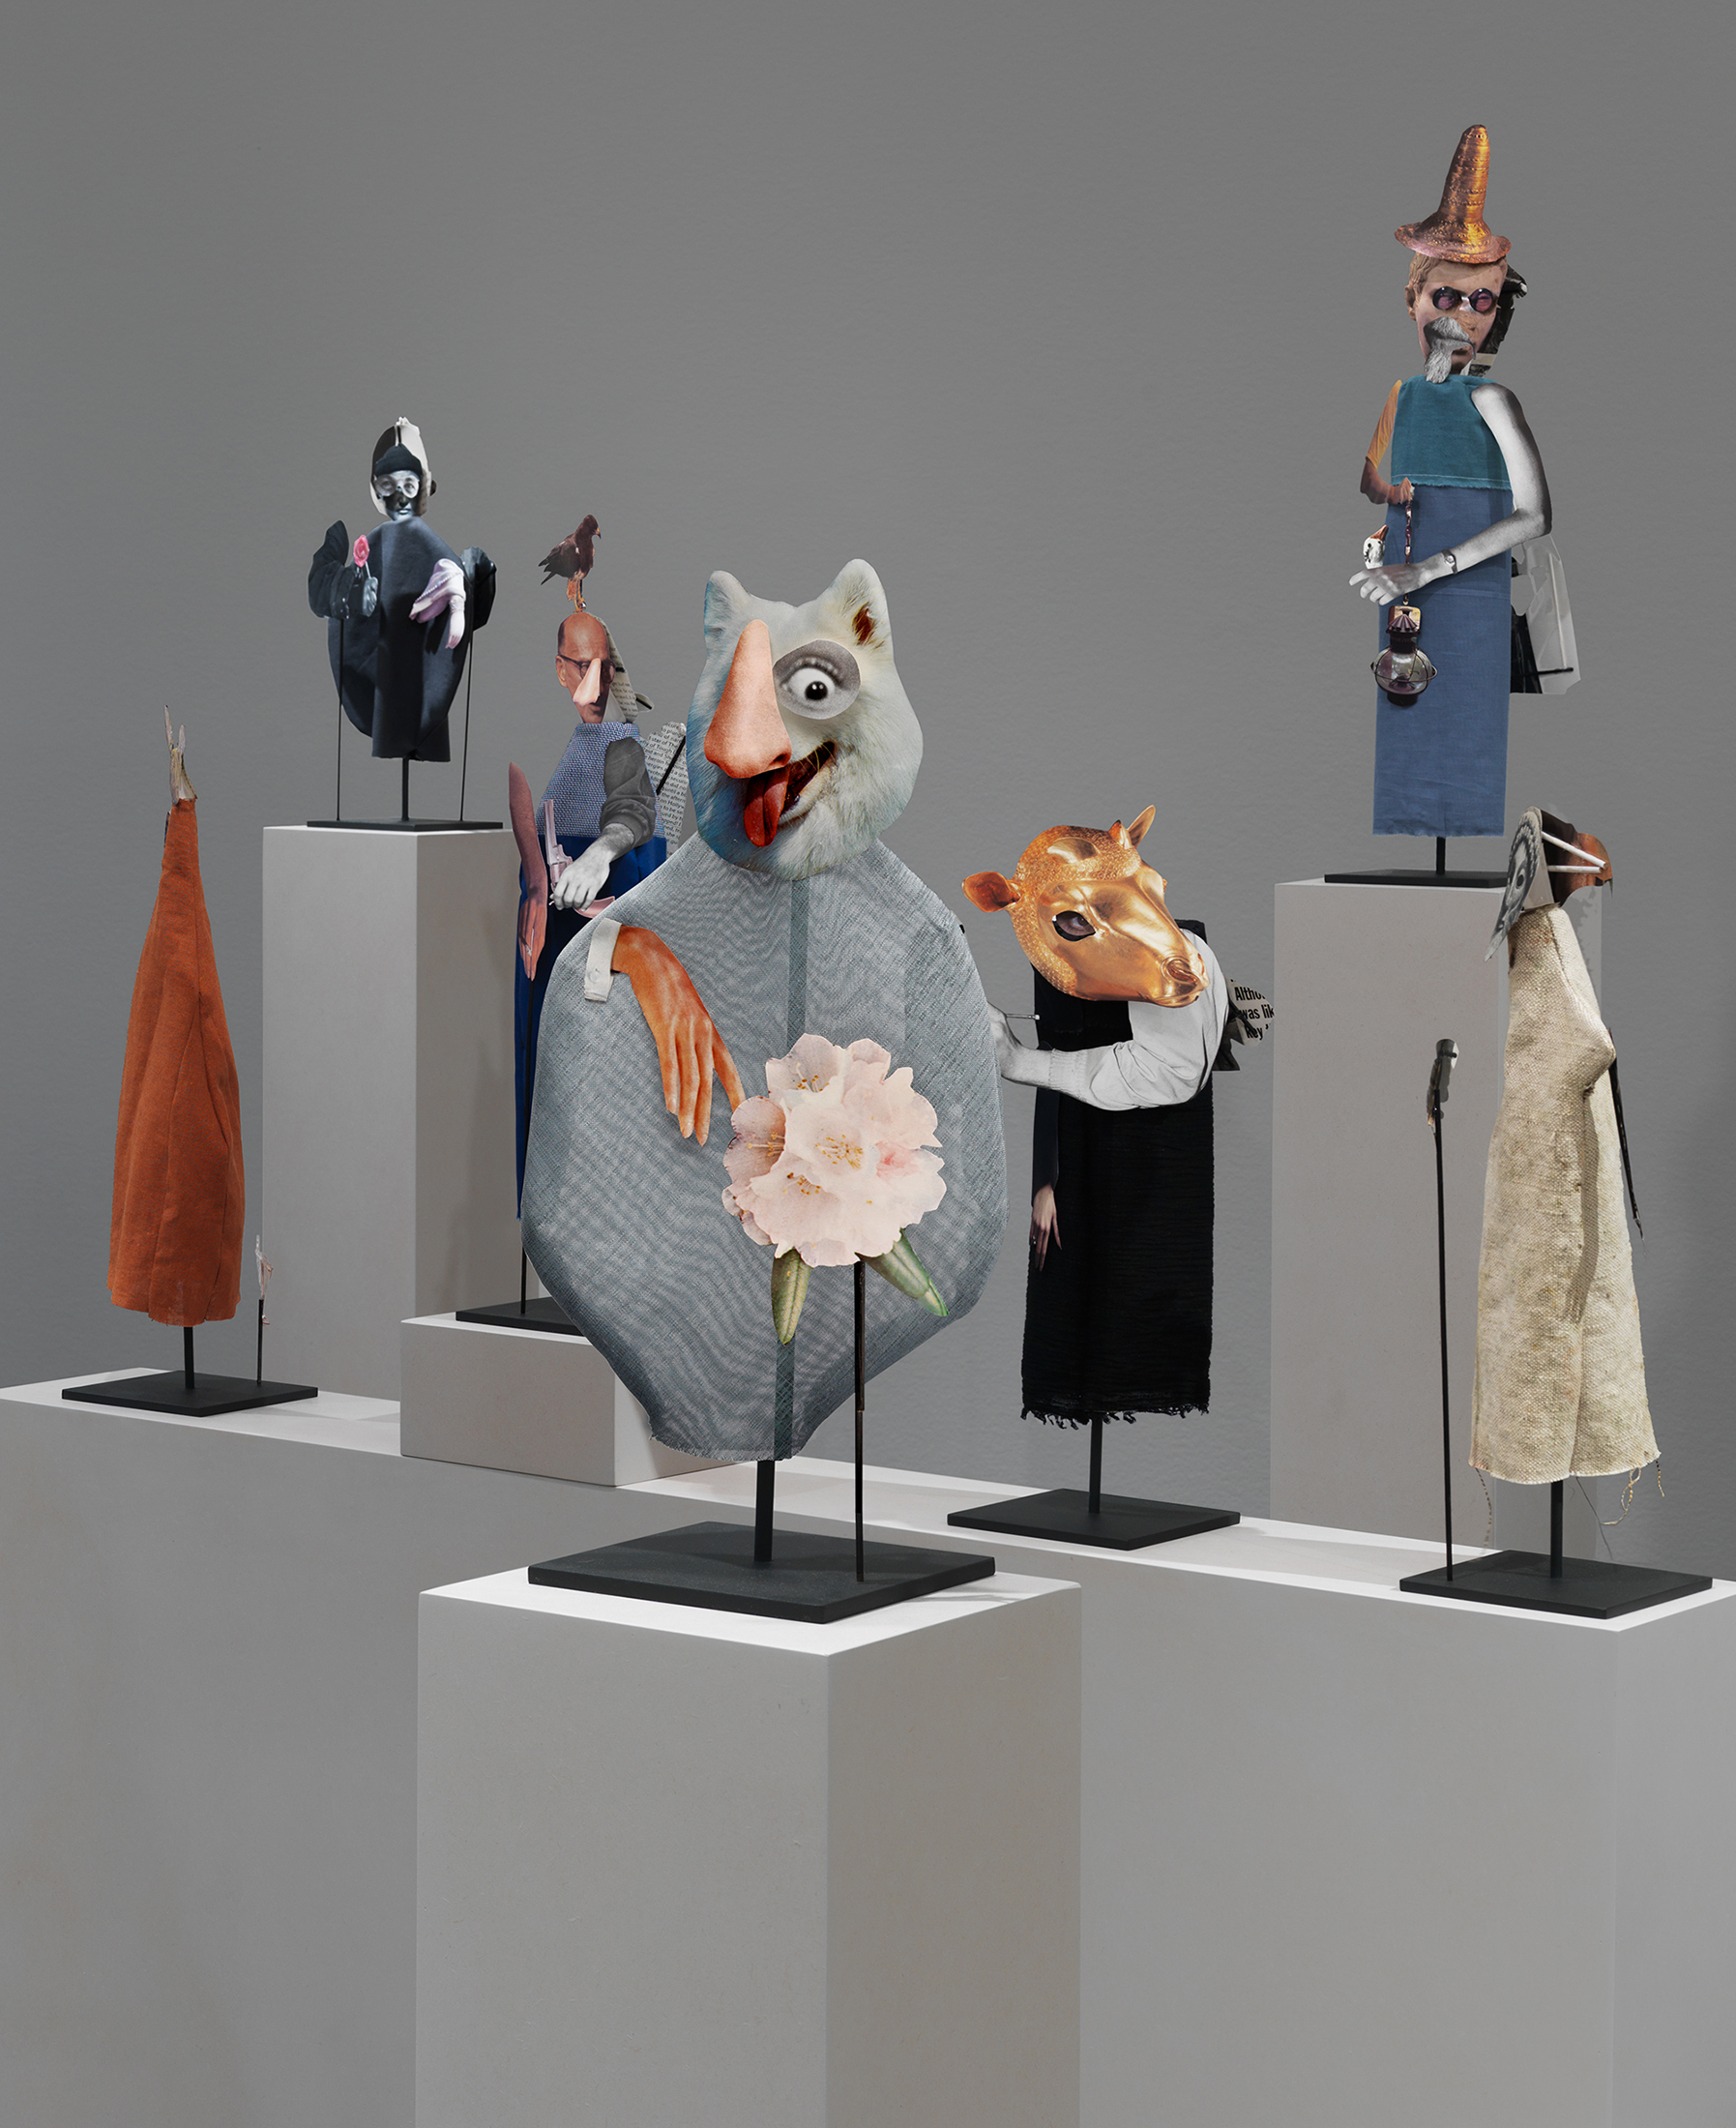 This photograph shows seven puppet-like puppet-like figurines made of bits of paper and fabric and mounted on metal rods. They are displayed on white blocks arranged to form a long procession.